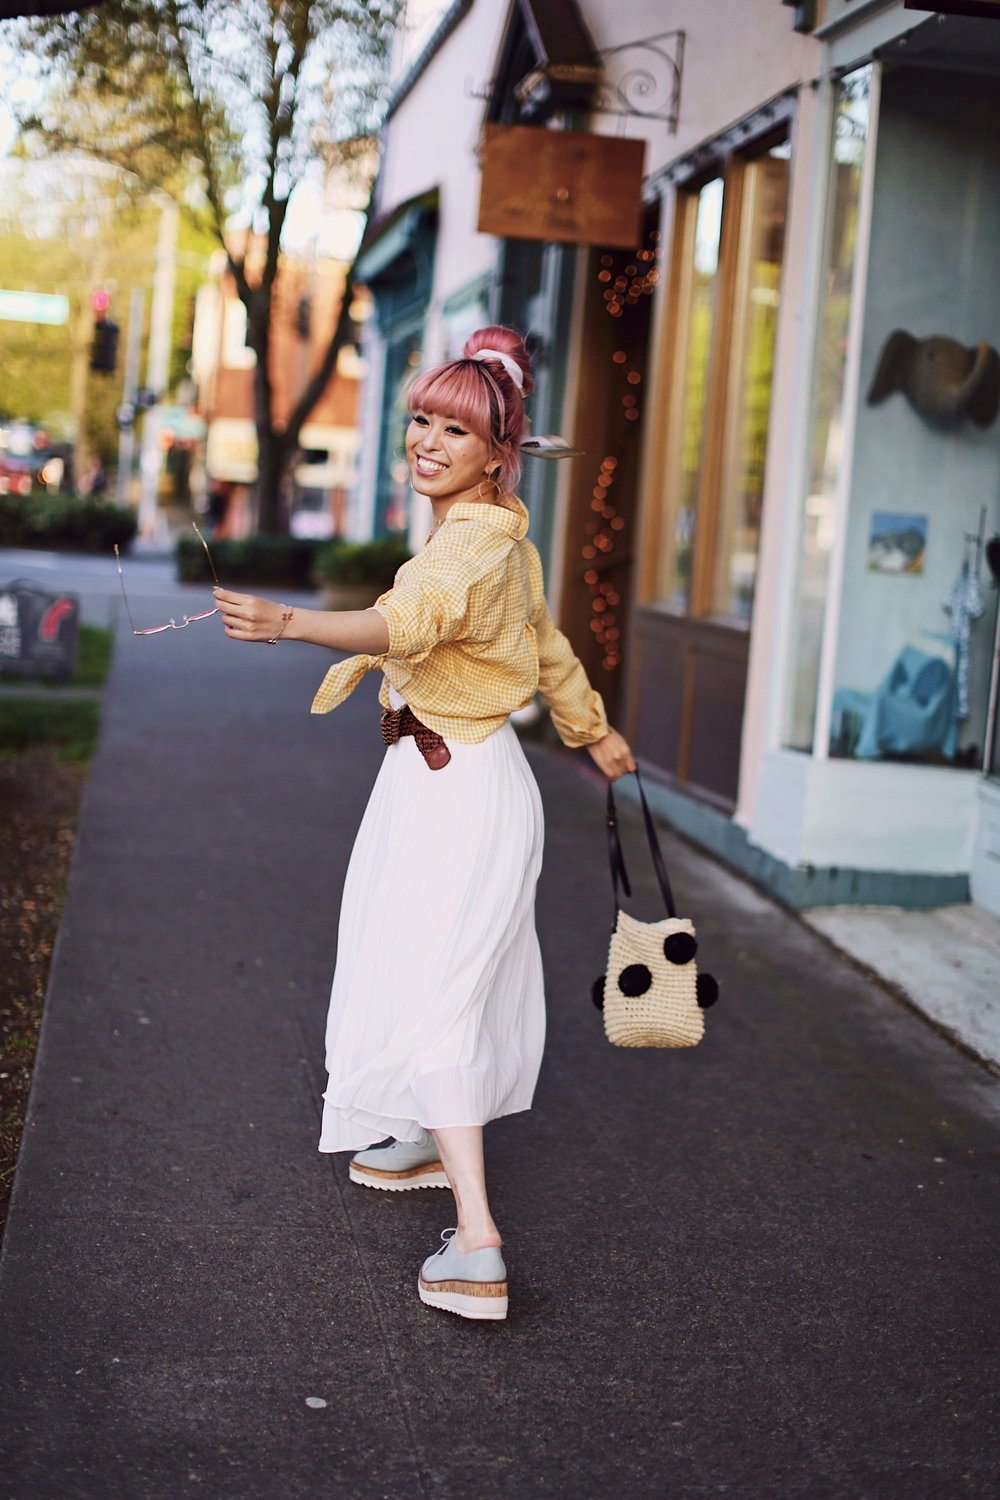 Uniqlo yellow Linen gingham shirt-Uniqlo White pleated chiffon midi skirt-Uniqlo Airism brat-pink tinted sunglasses ZERO UV-She in Pom pom Straw bucket bag-Vintage scarf bun hair style-Steve Madden Belt-Jane and the shoe denim oxford platforms-Aika's Love Closet-seattle fashion style blogger-Japanese-pink hair-smiling-spring fashion 14